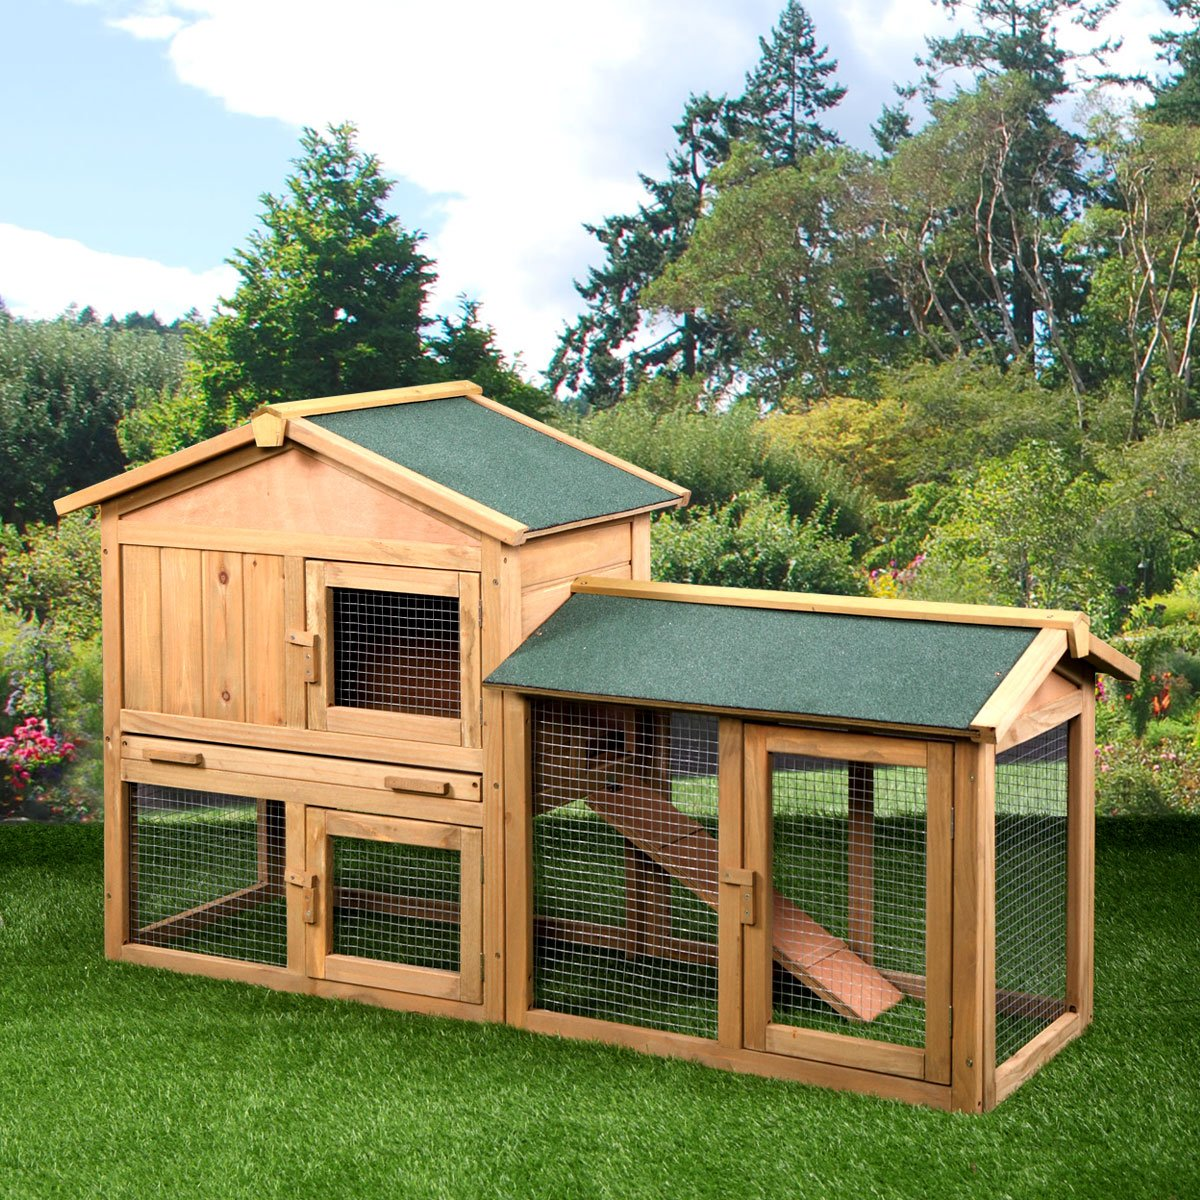 P PURLOVE Wood Bunny Hutch 54'' Large 2 Story Outdoor Bunny House with Removable Tray & Ramp, Backyard Garden Rabbit Cage/Guinea Pig House/Chicken Coop Nesting Box for Small Animals by P PURLOVE (Image #2)